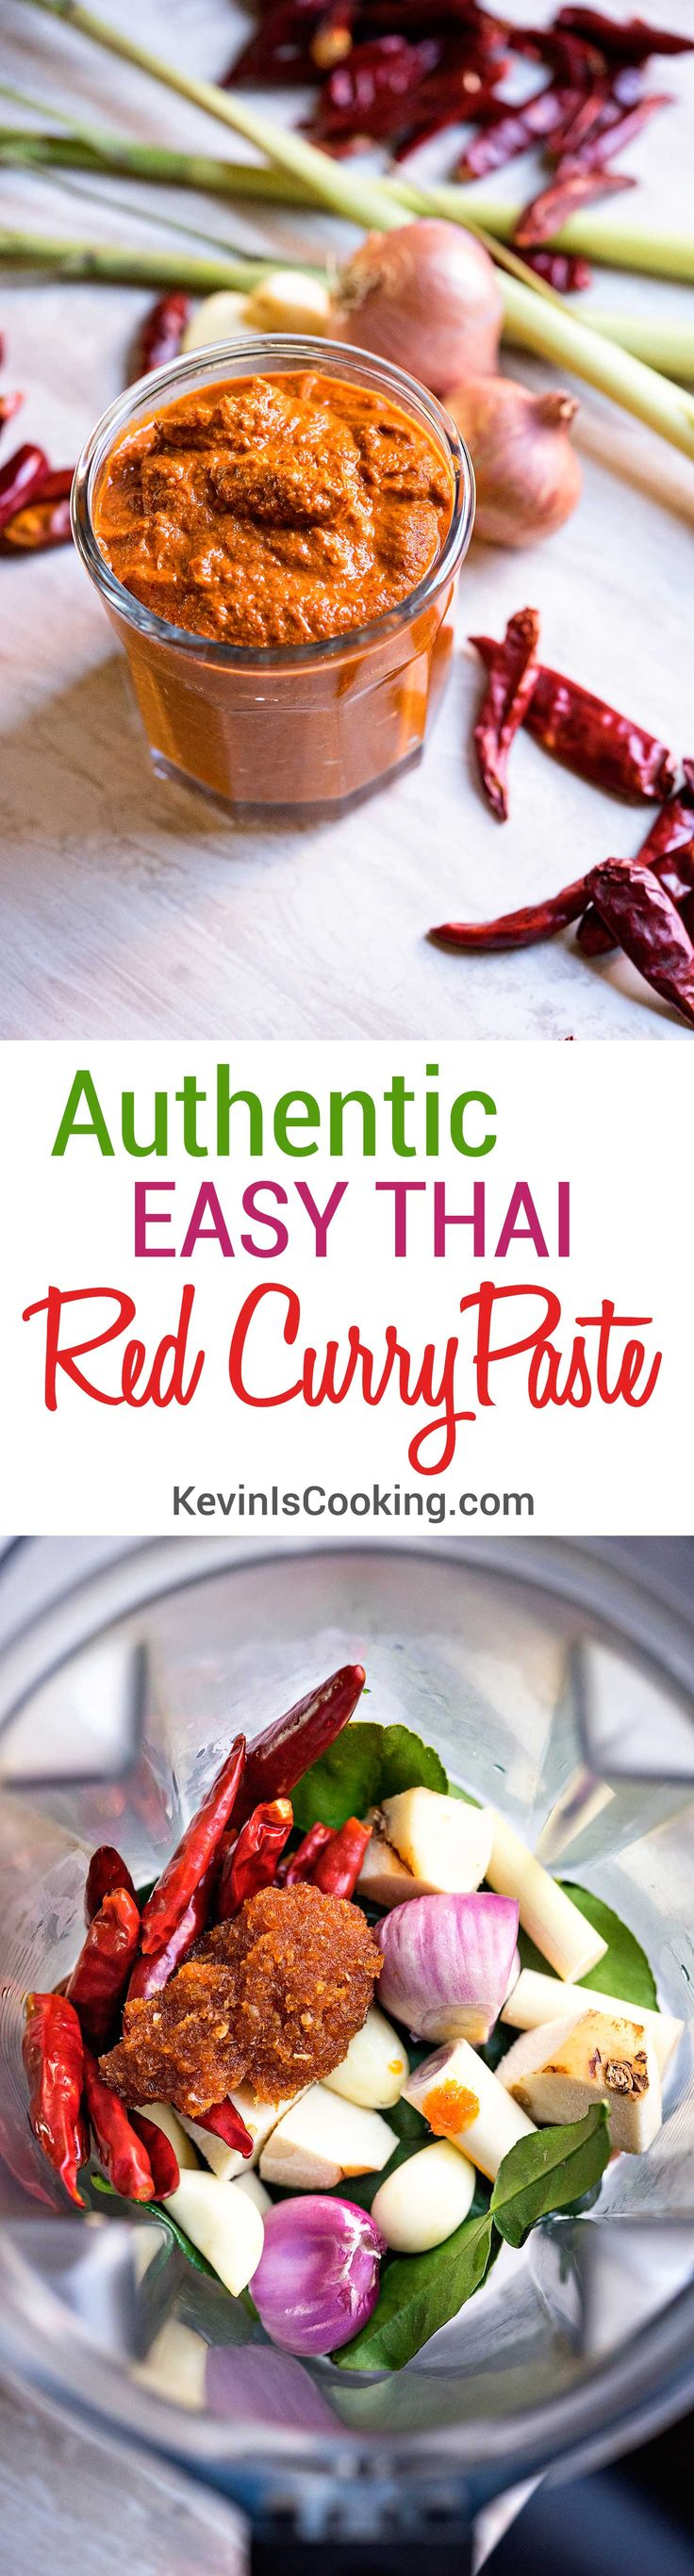 Looking for authentic Thai? This Easy Thai Red Curry Paste with only 7 ingredients delivers 1 massive amount of POW. www.keviniscooking.com